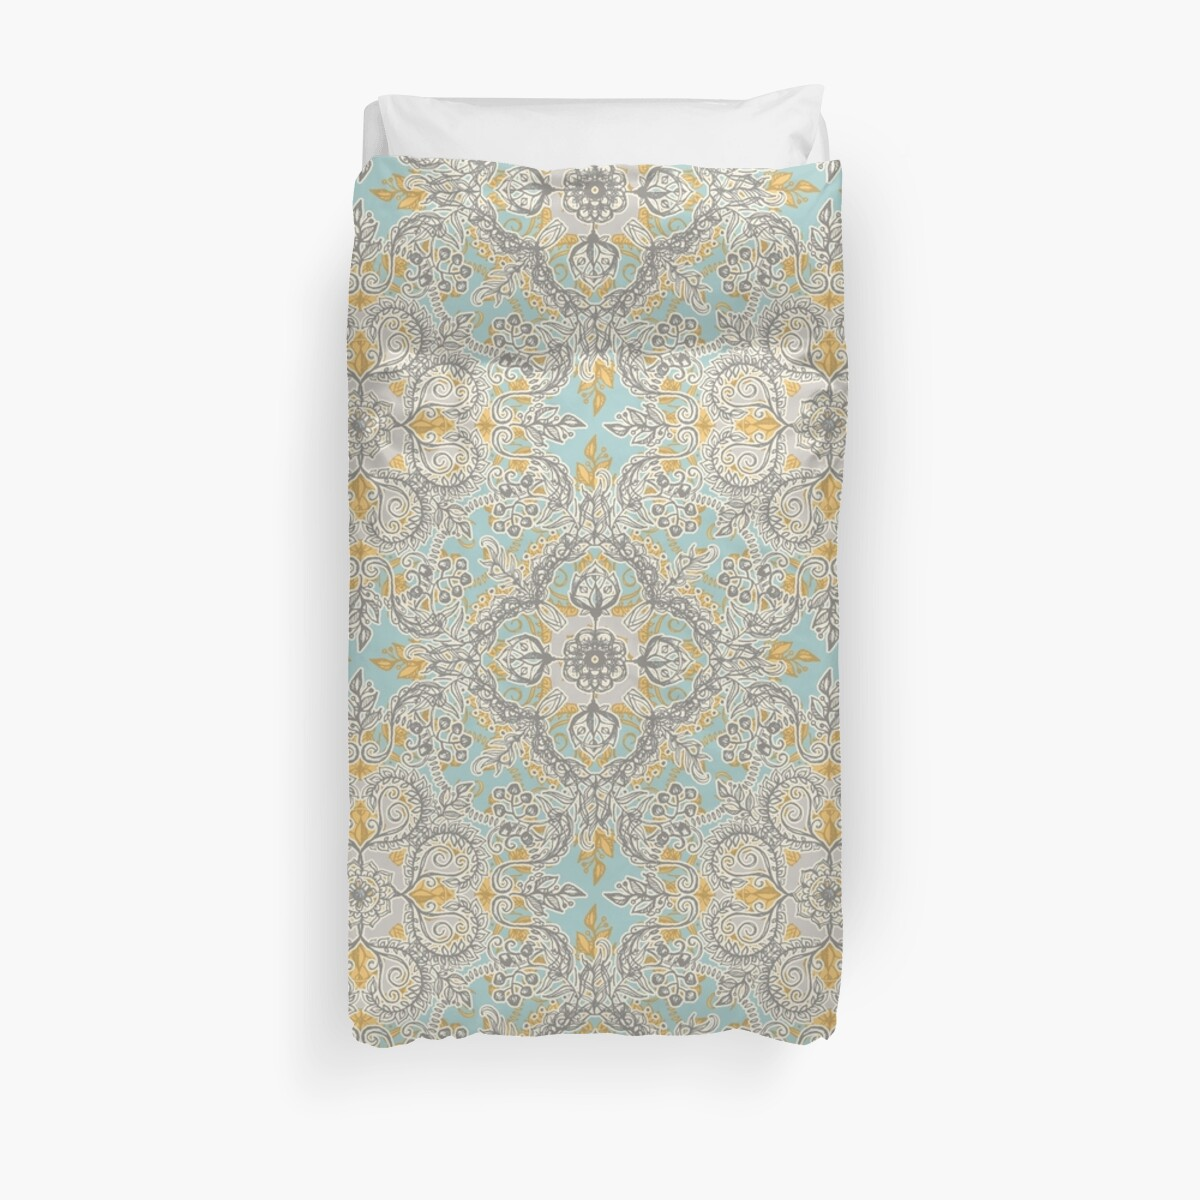 Quot Gypsy Floral In Soft Neutrals Grey Amp Yellow On Sage